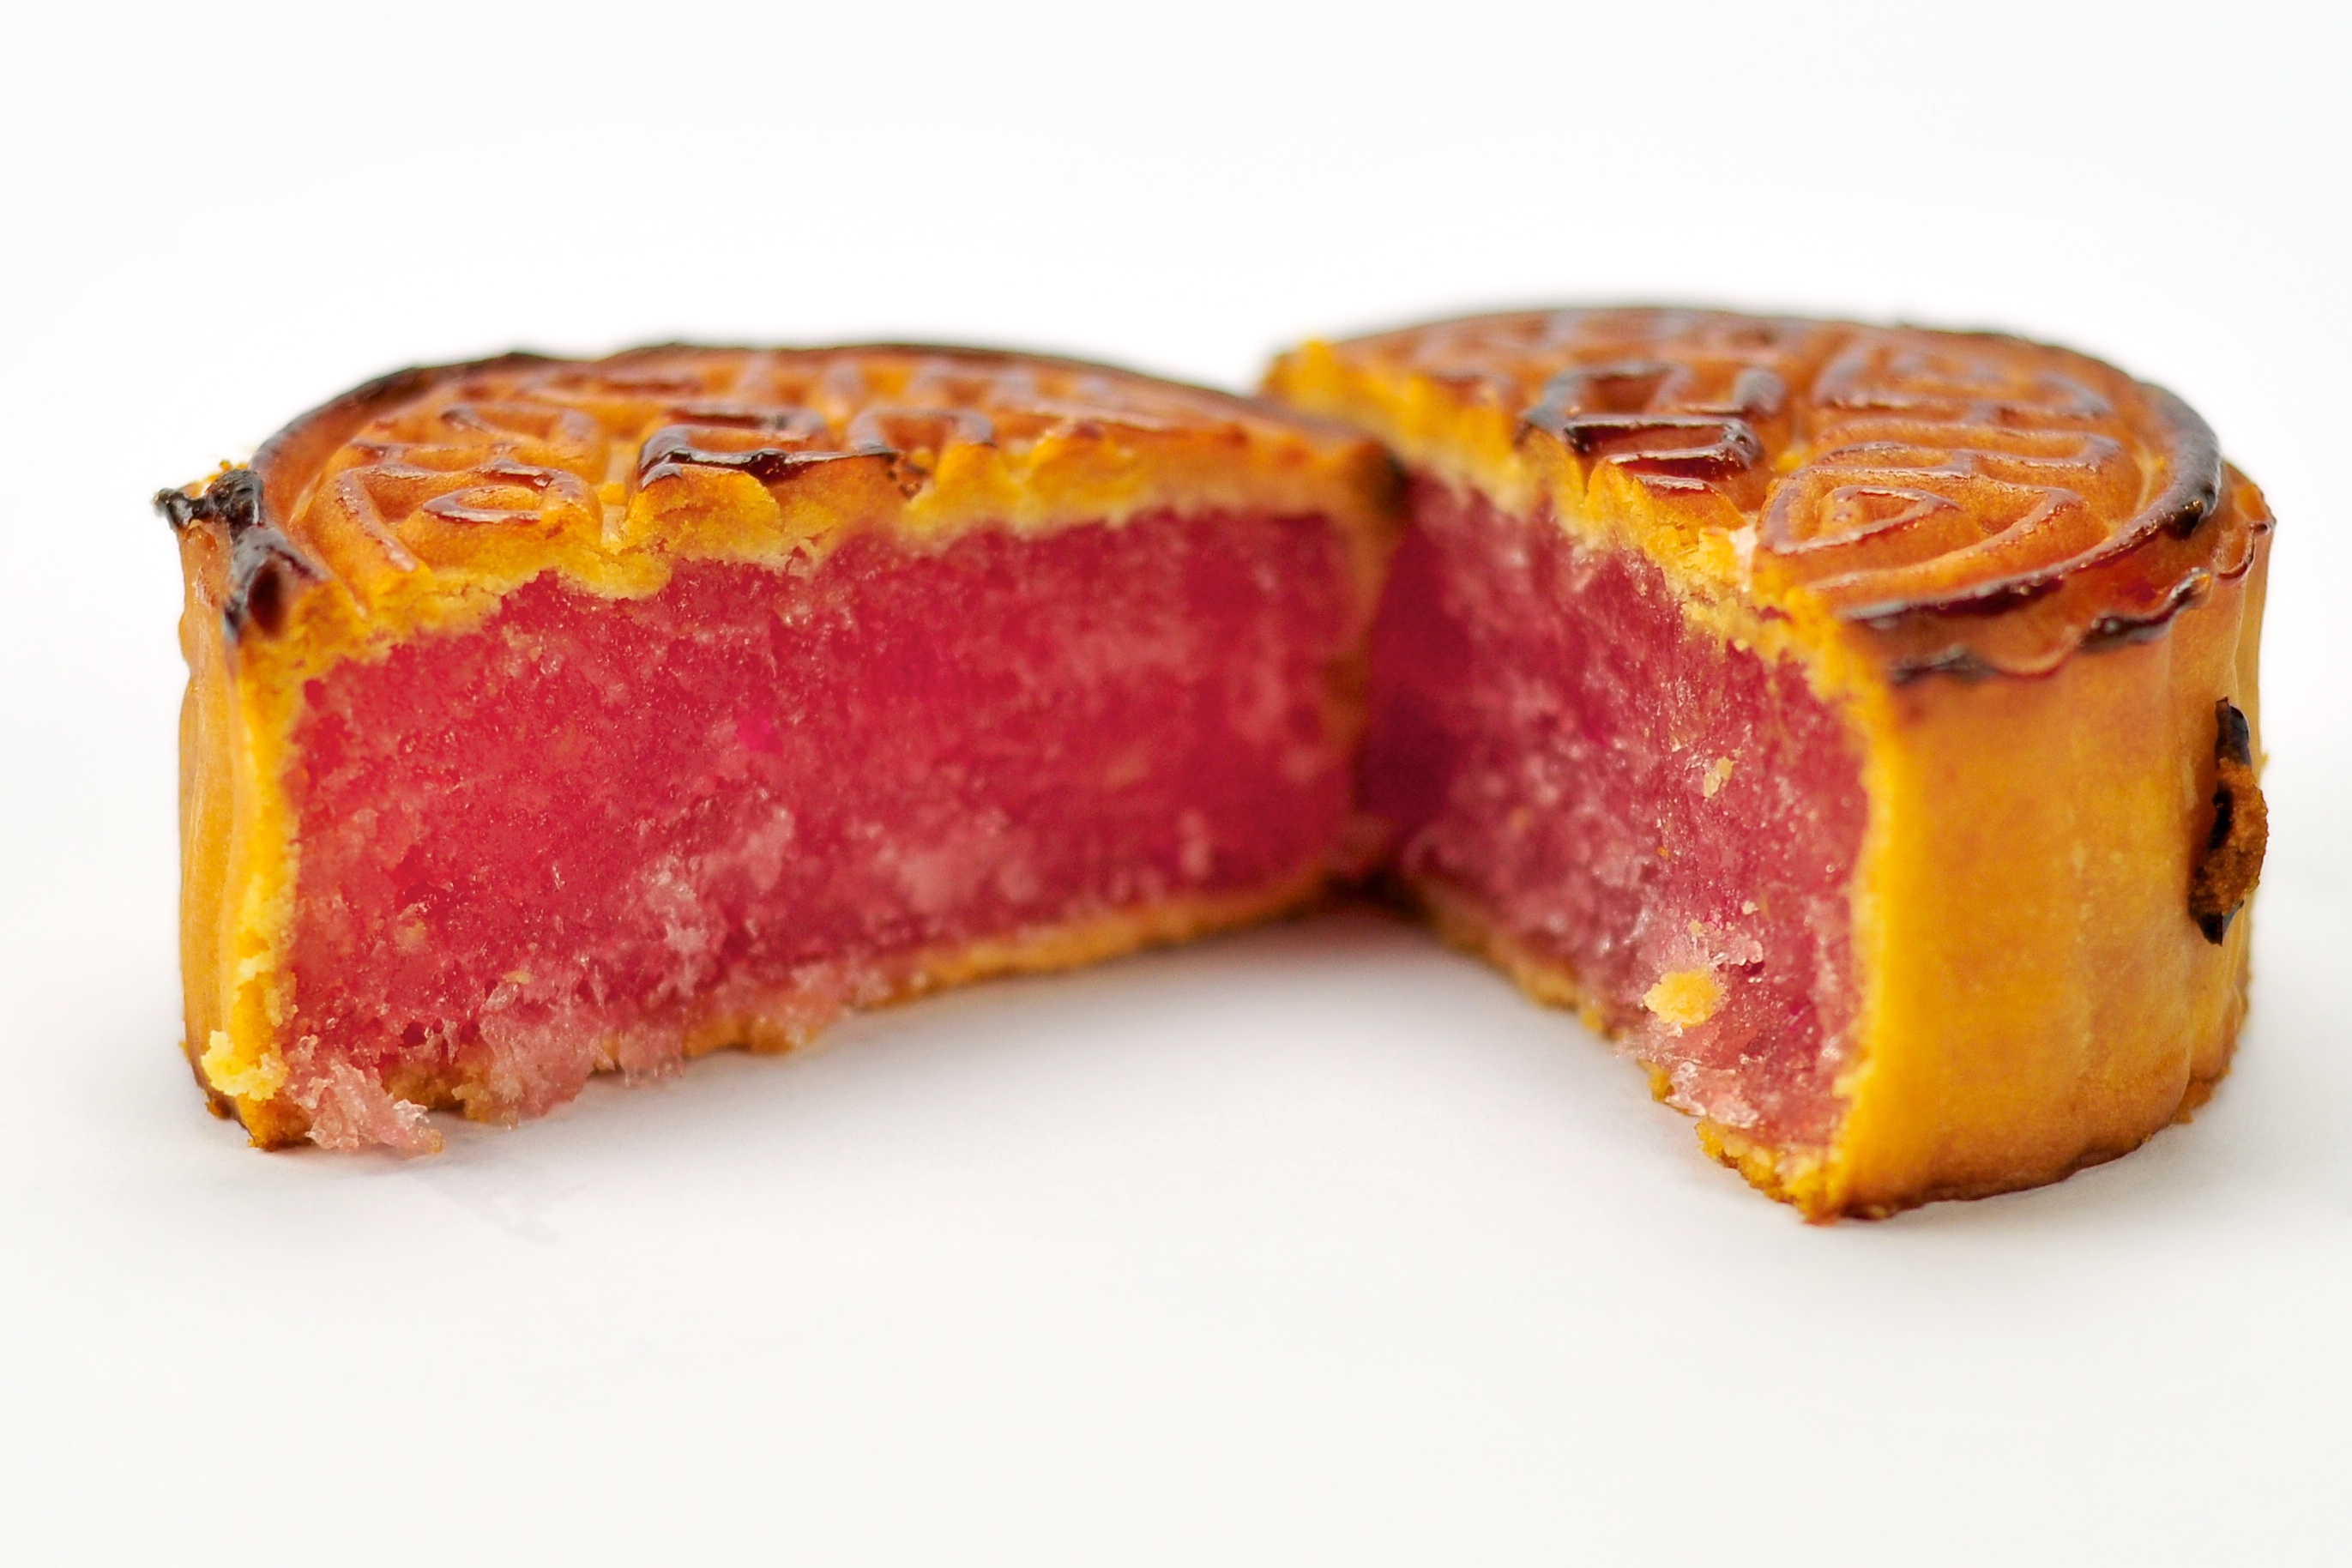 File:Moon Cake Filling.jpg - Wikipedia, the free encyclopedia